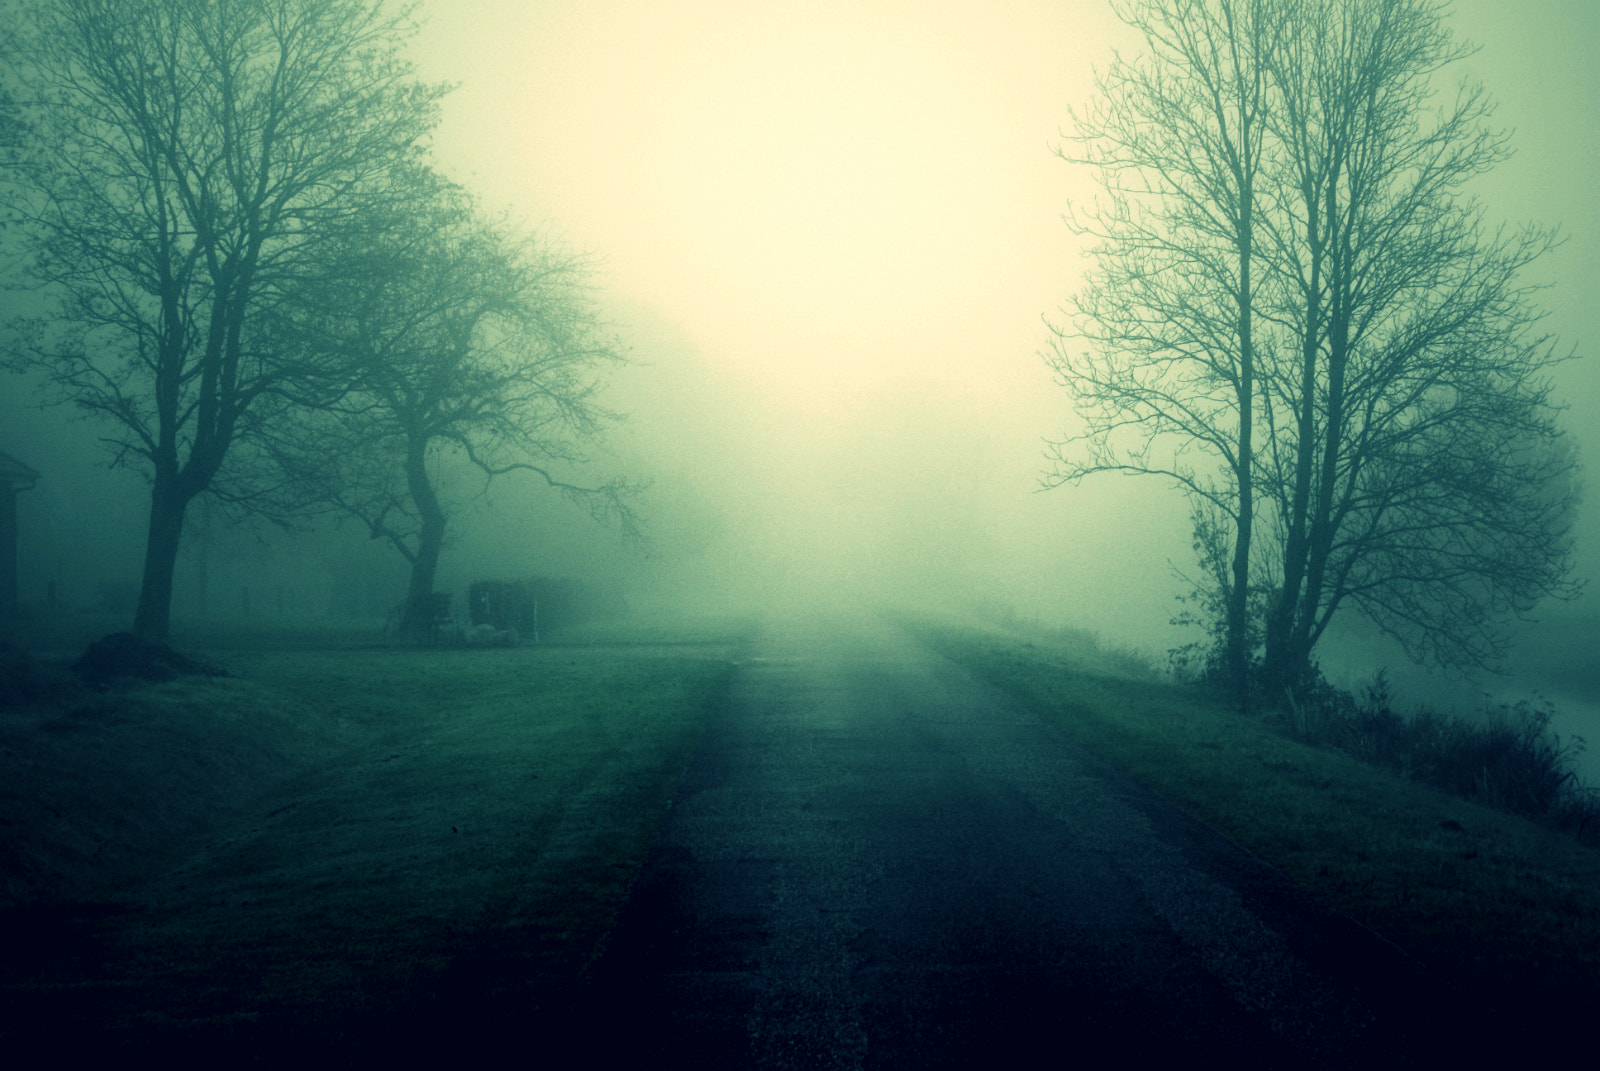 Photograph The Green fog by op drie on 500px